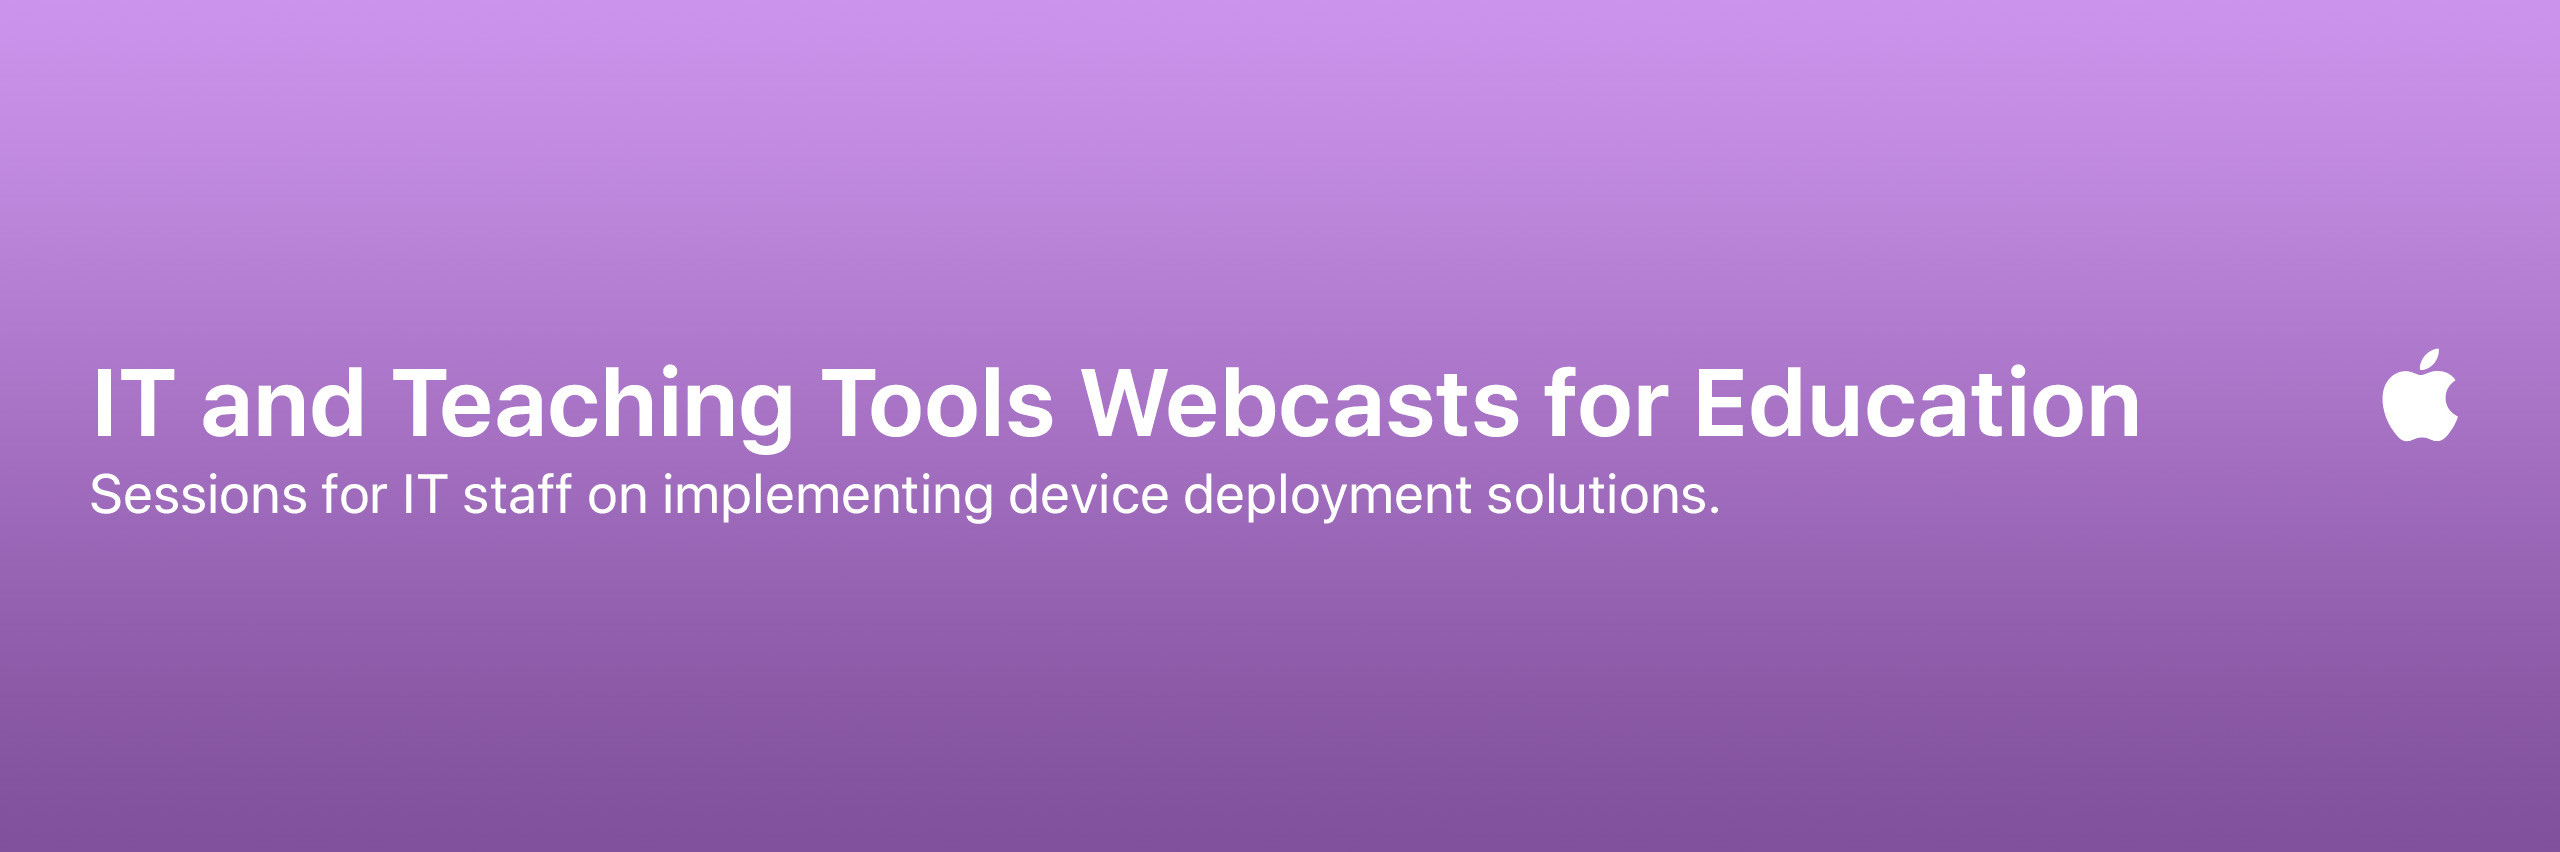 IT and Teaching Tools Webcasts for Education